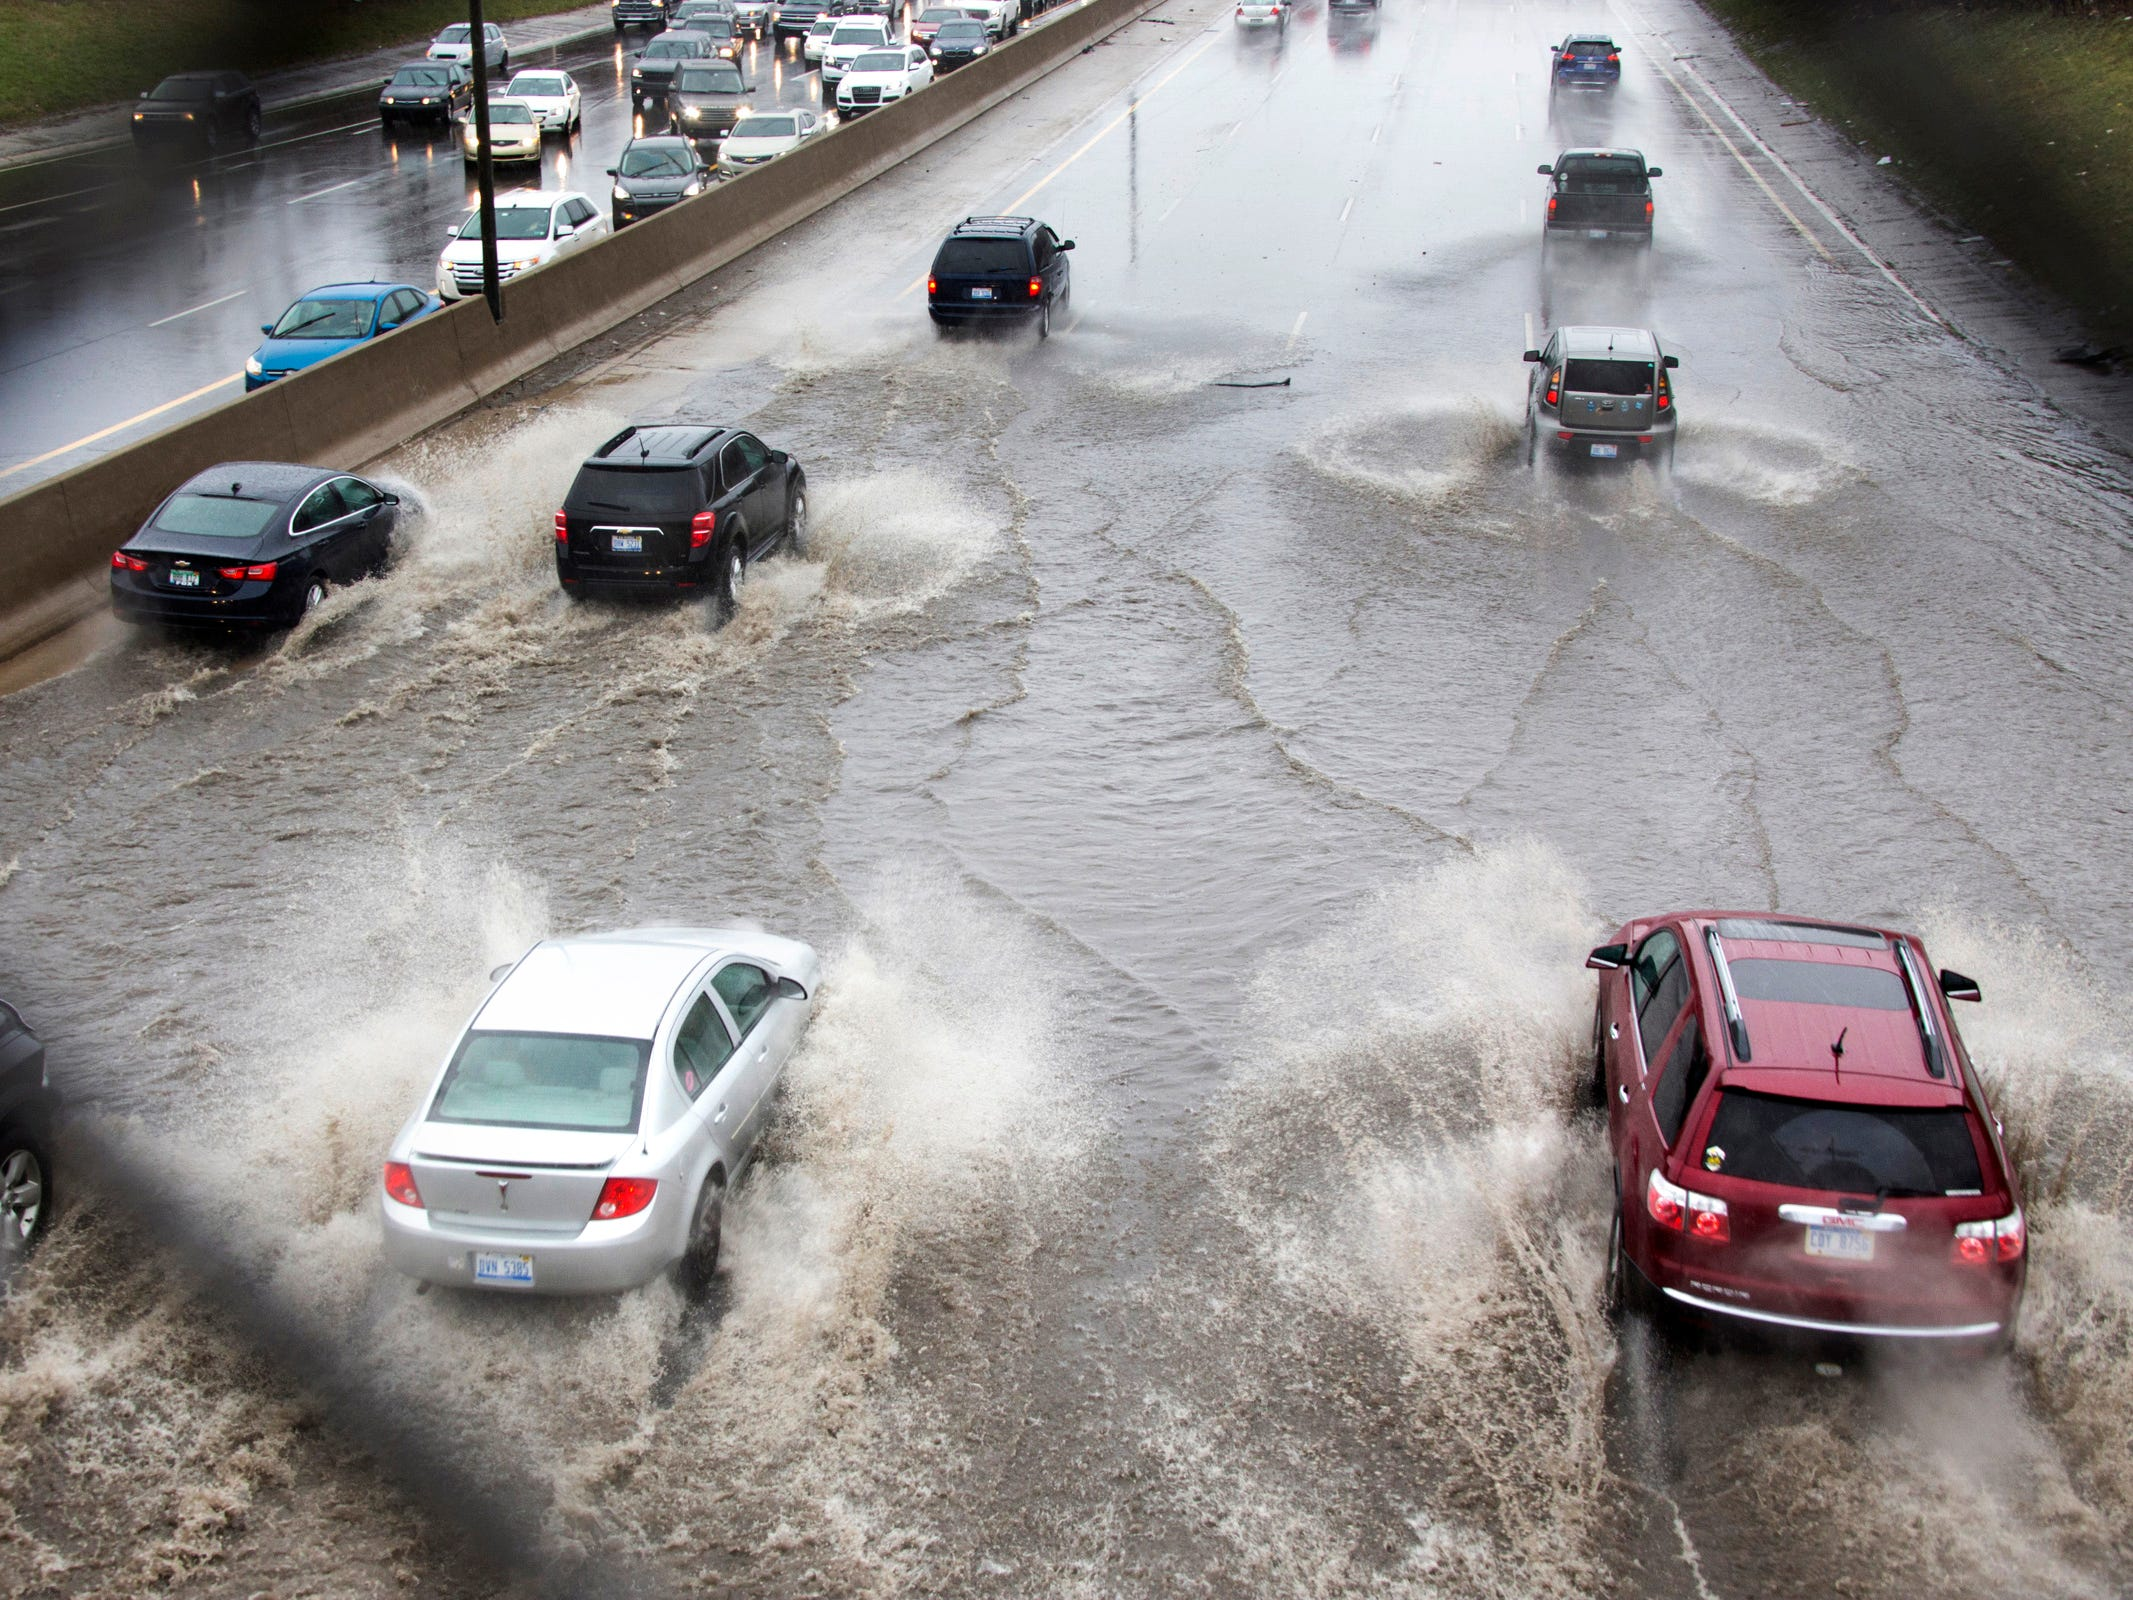 Cars drive under the 7 Mile overpass on I-75 through flooded waters in Detroit Sunday April 15, 2018.